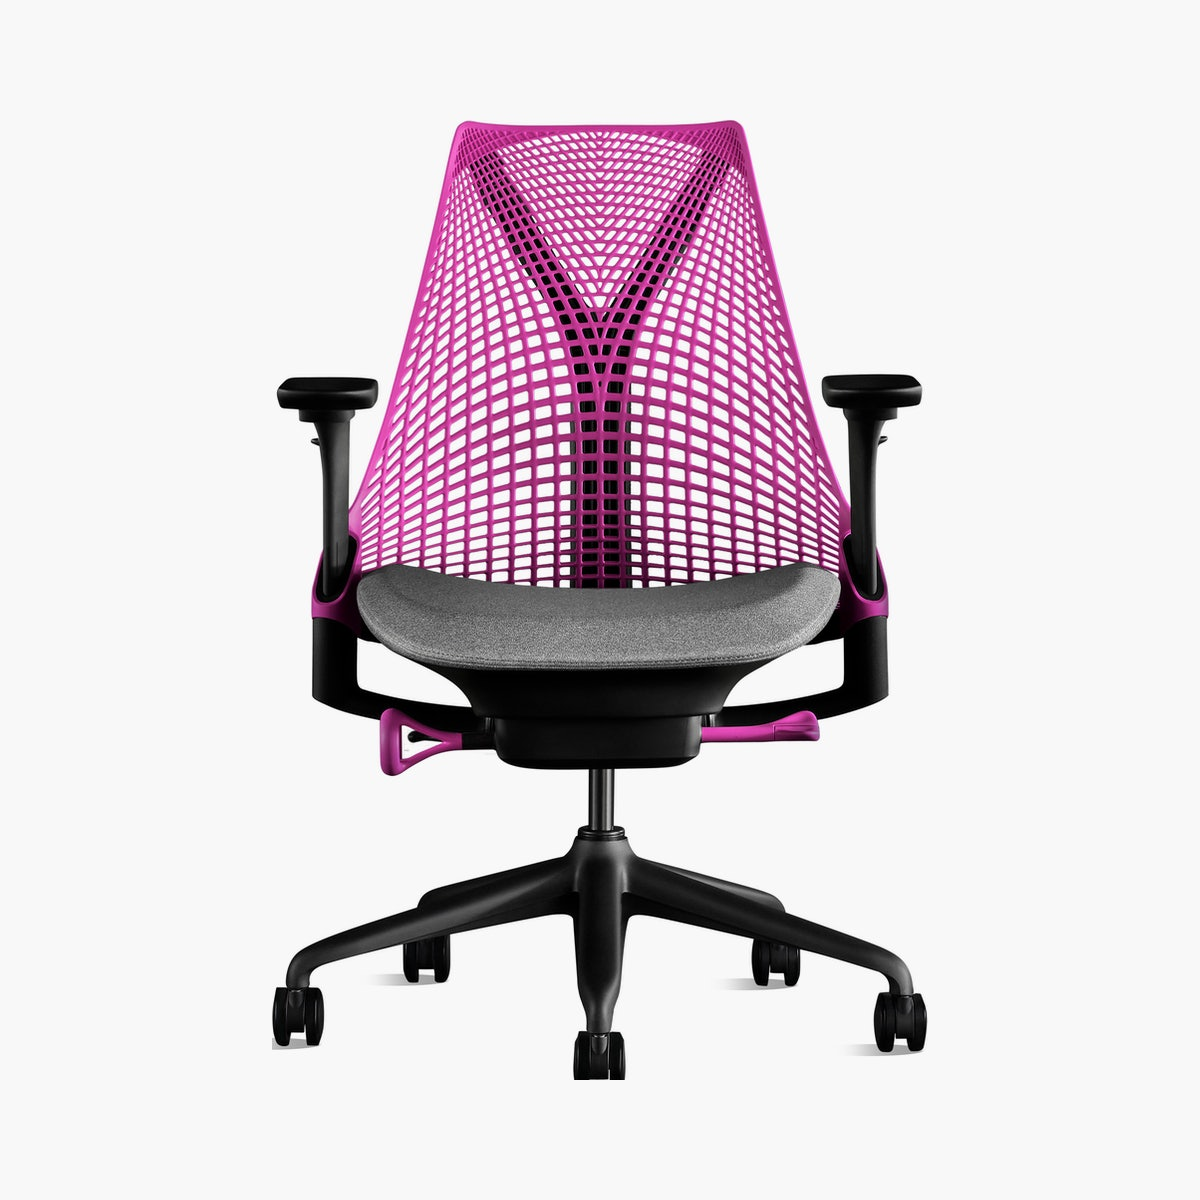 Sayl Chair, Special Gaming Edition